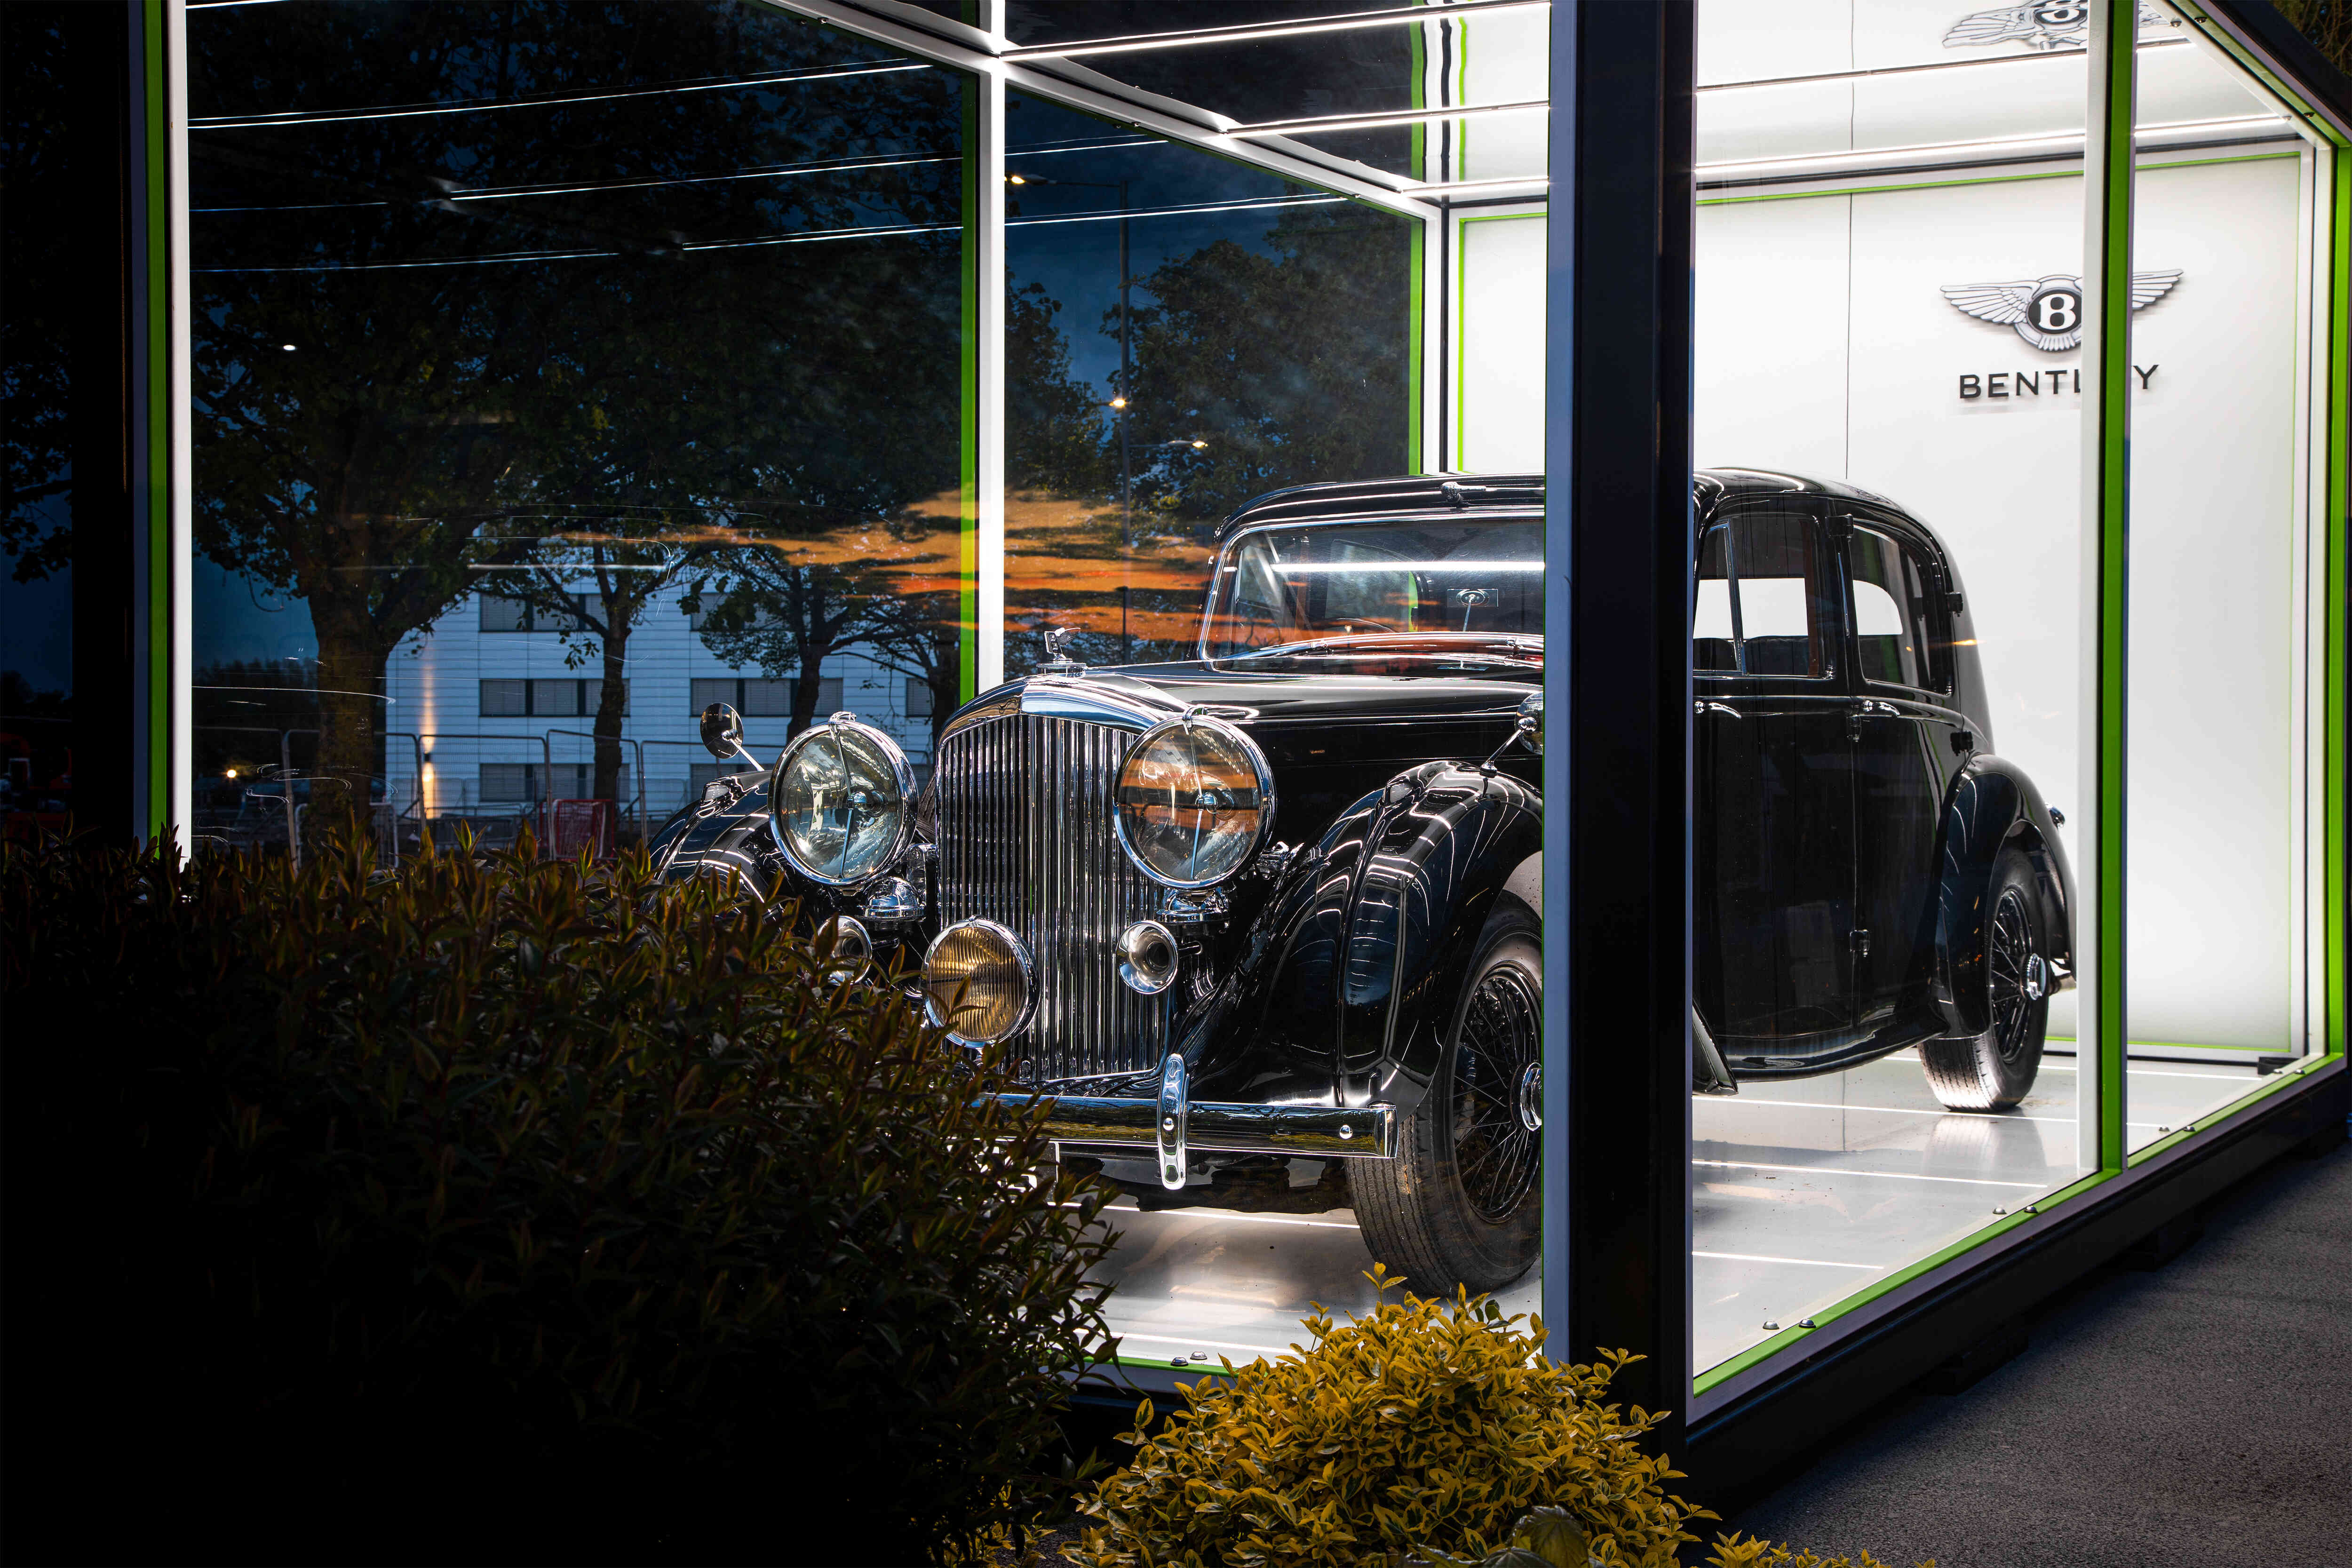 Bentley celebrates 75 years of manufacturing cars in crewe